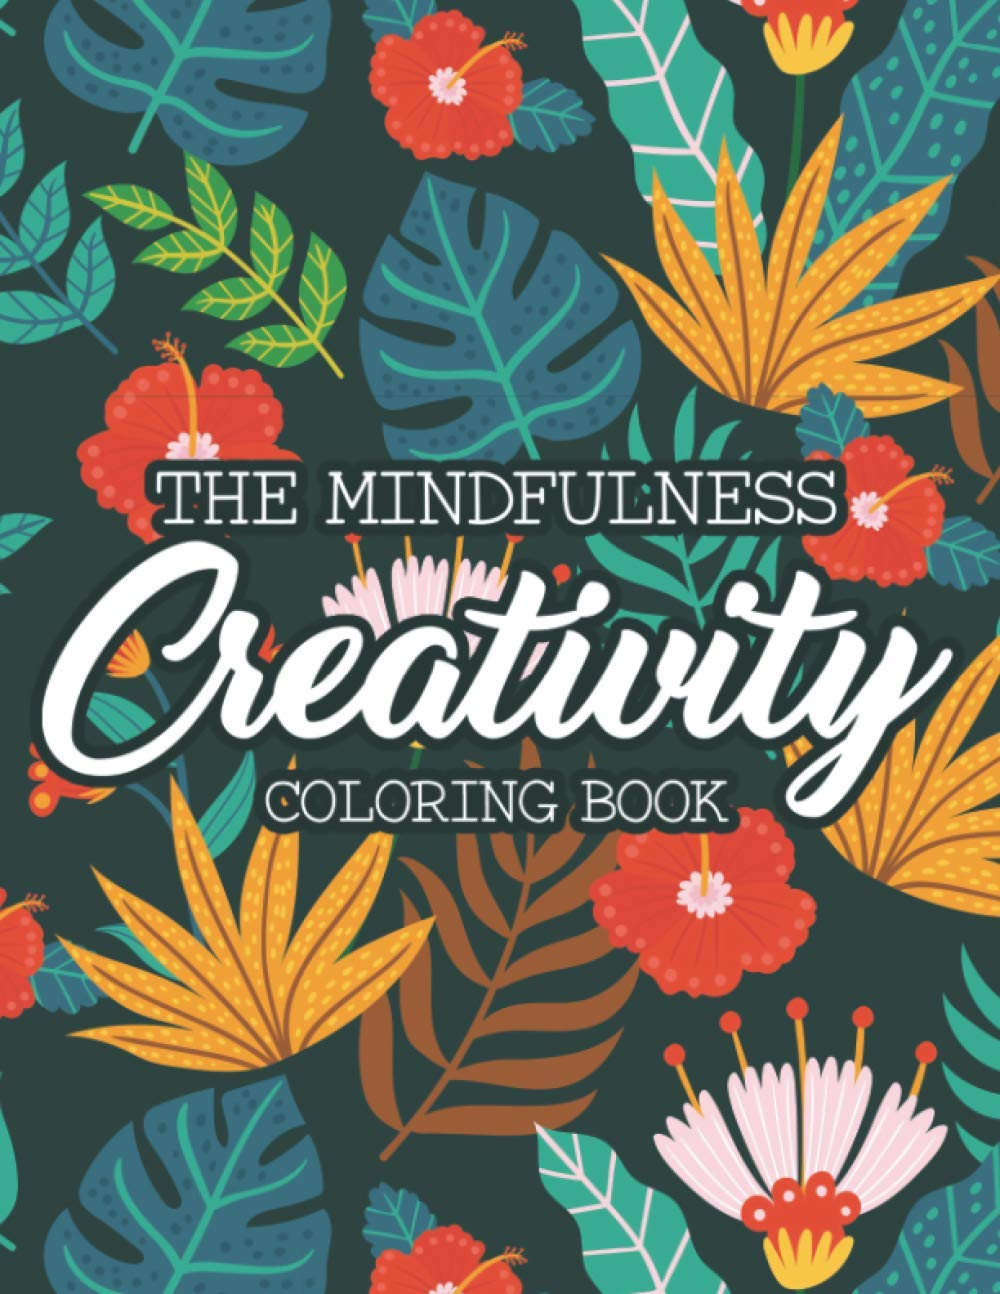 The Mindfulness Coloring Book: Stress-Relieving Patterns And Designs To Color, Relaxing Coloring Sheets For Women